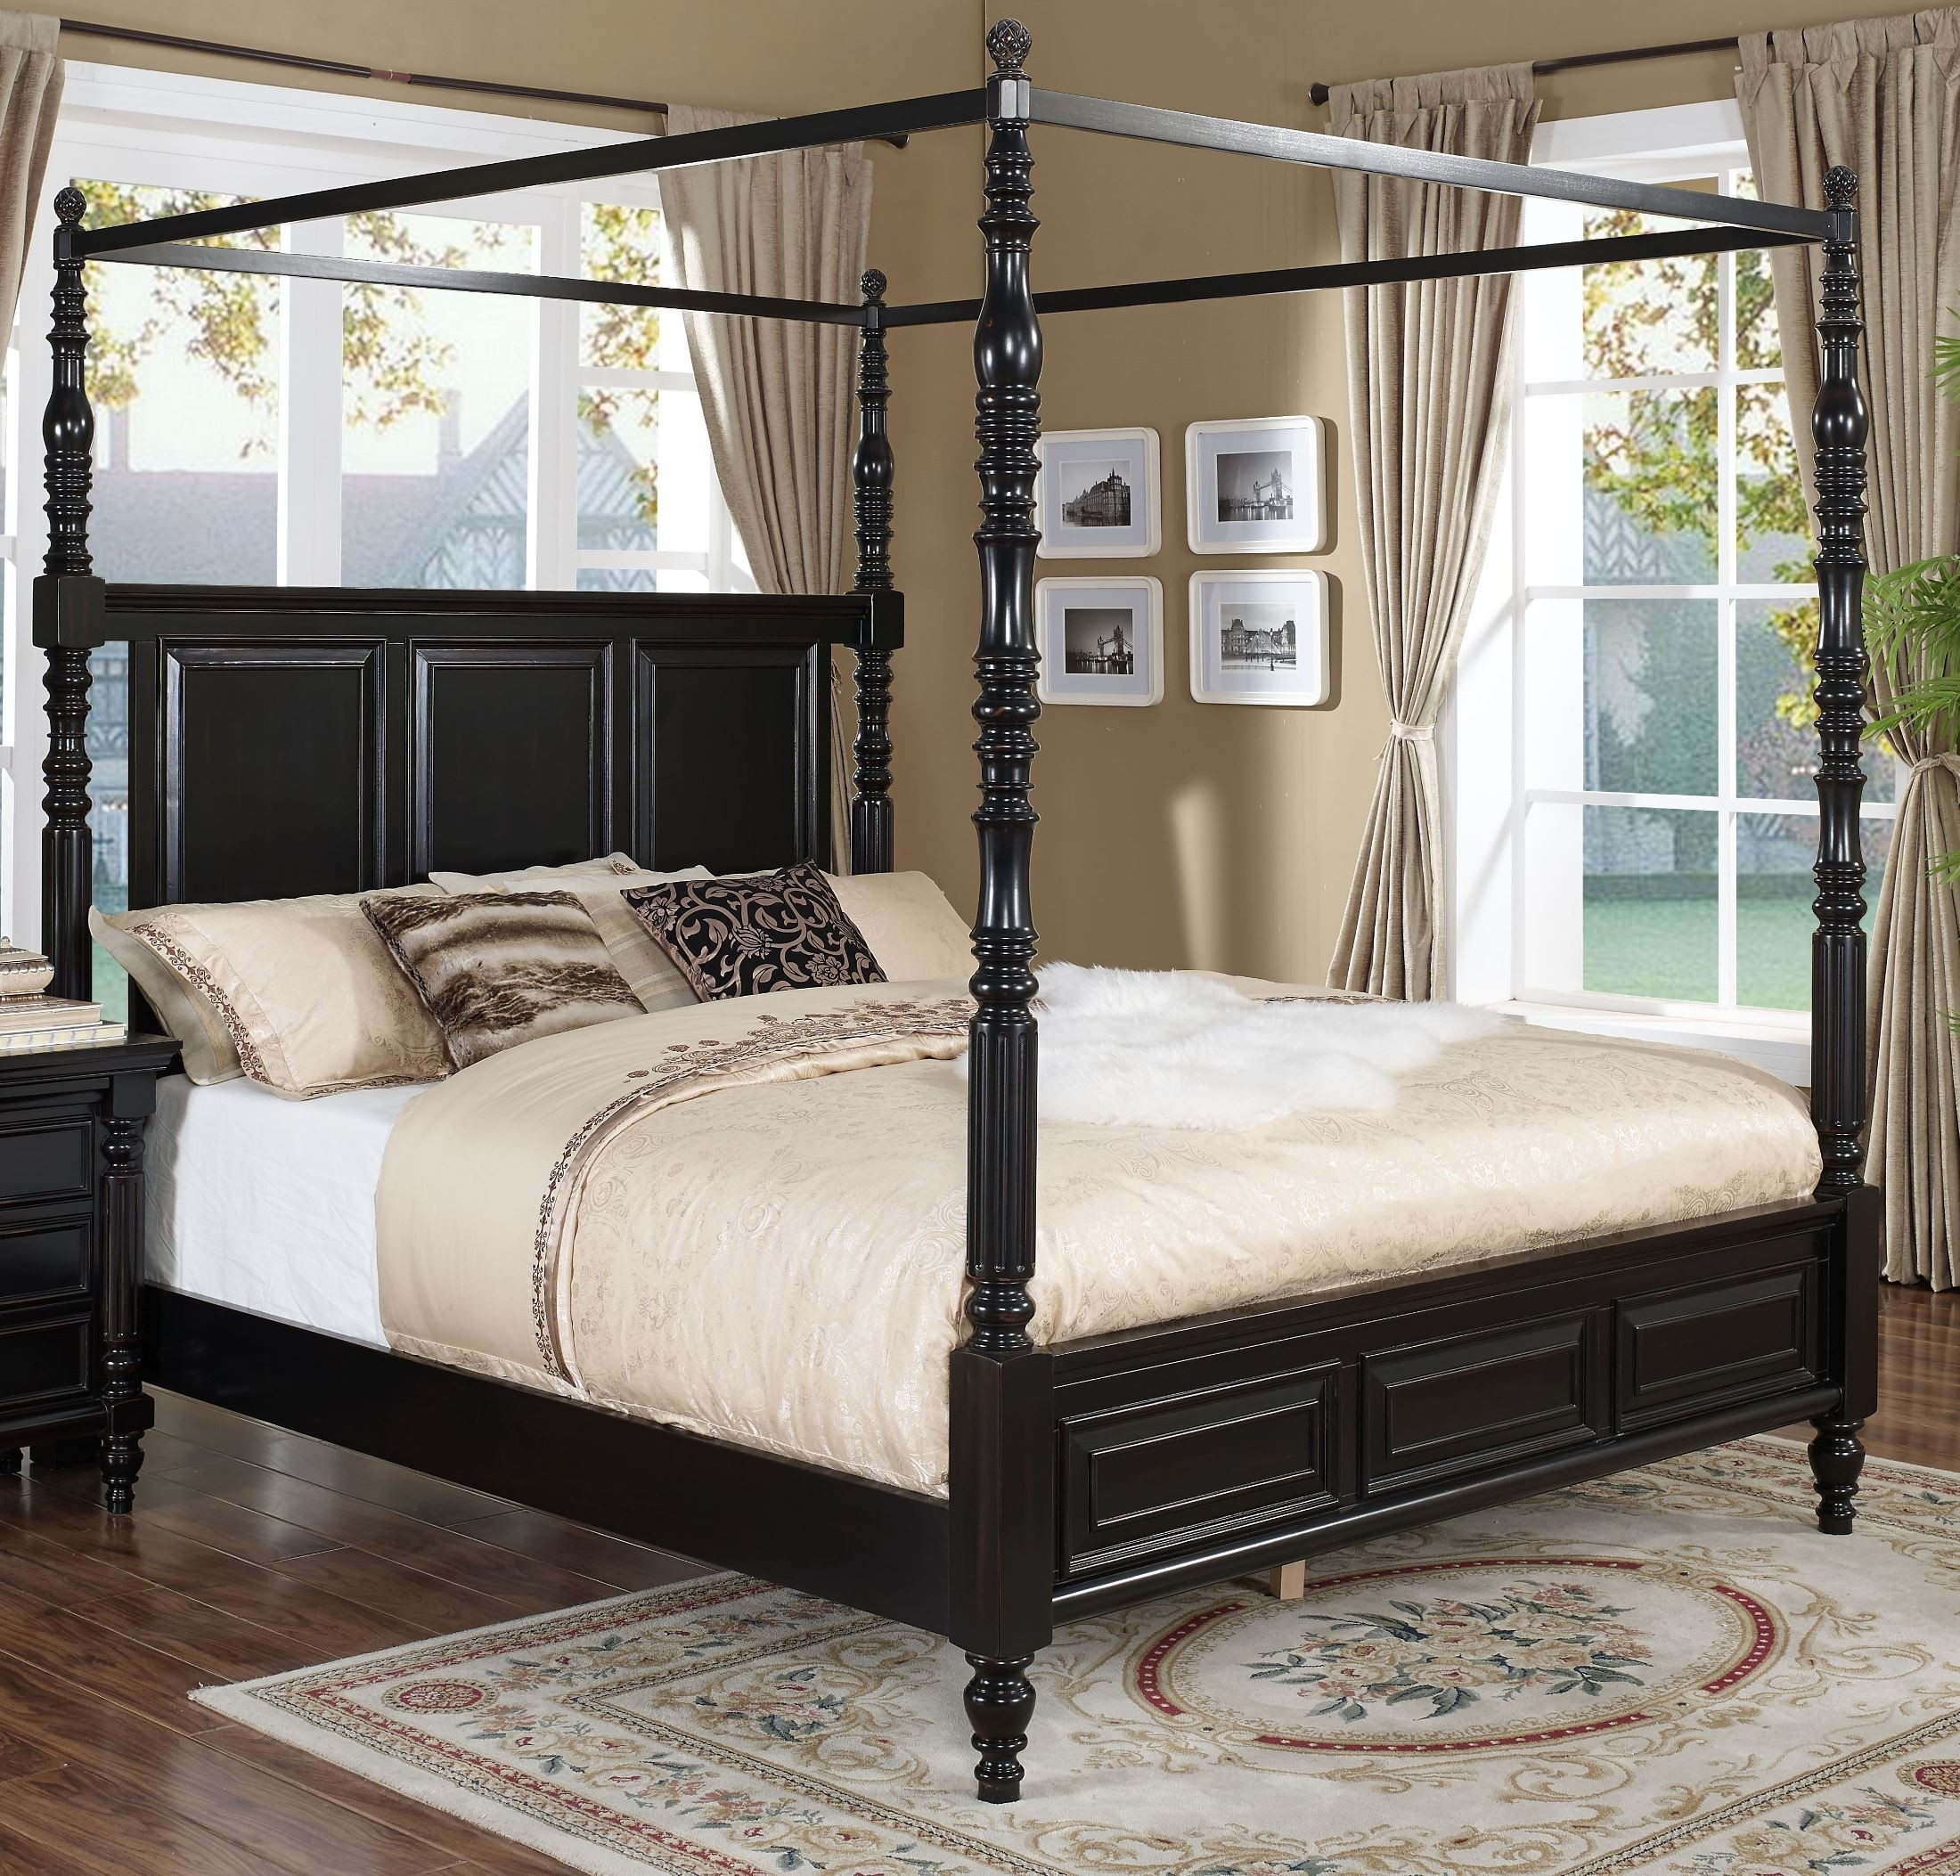 Martinique Rubbed Black Canopy Bedroom Set With Drapes From New